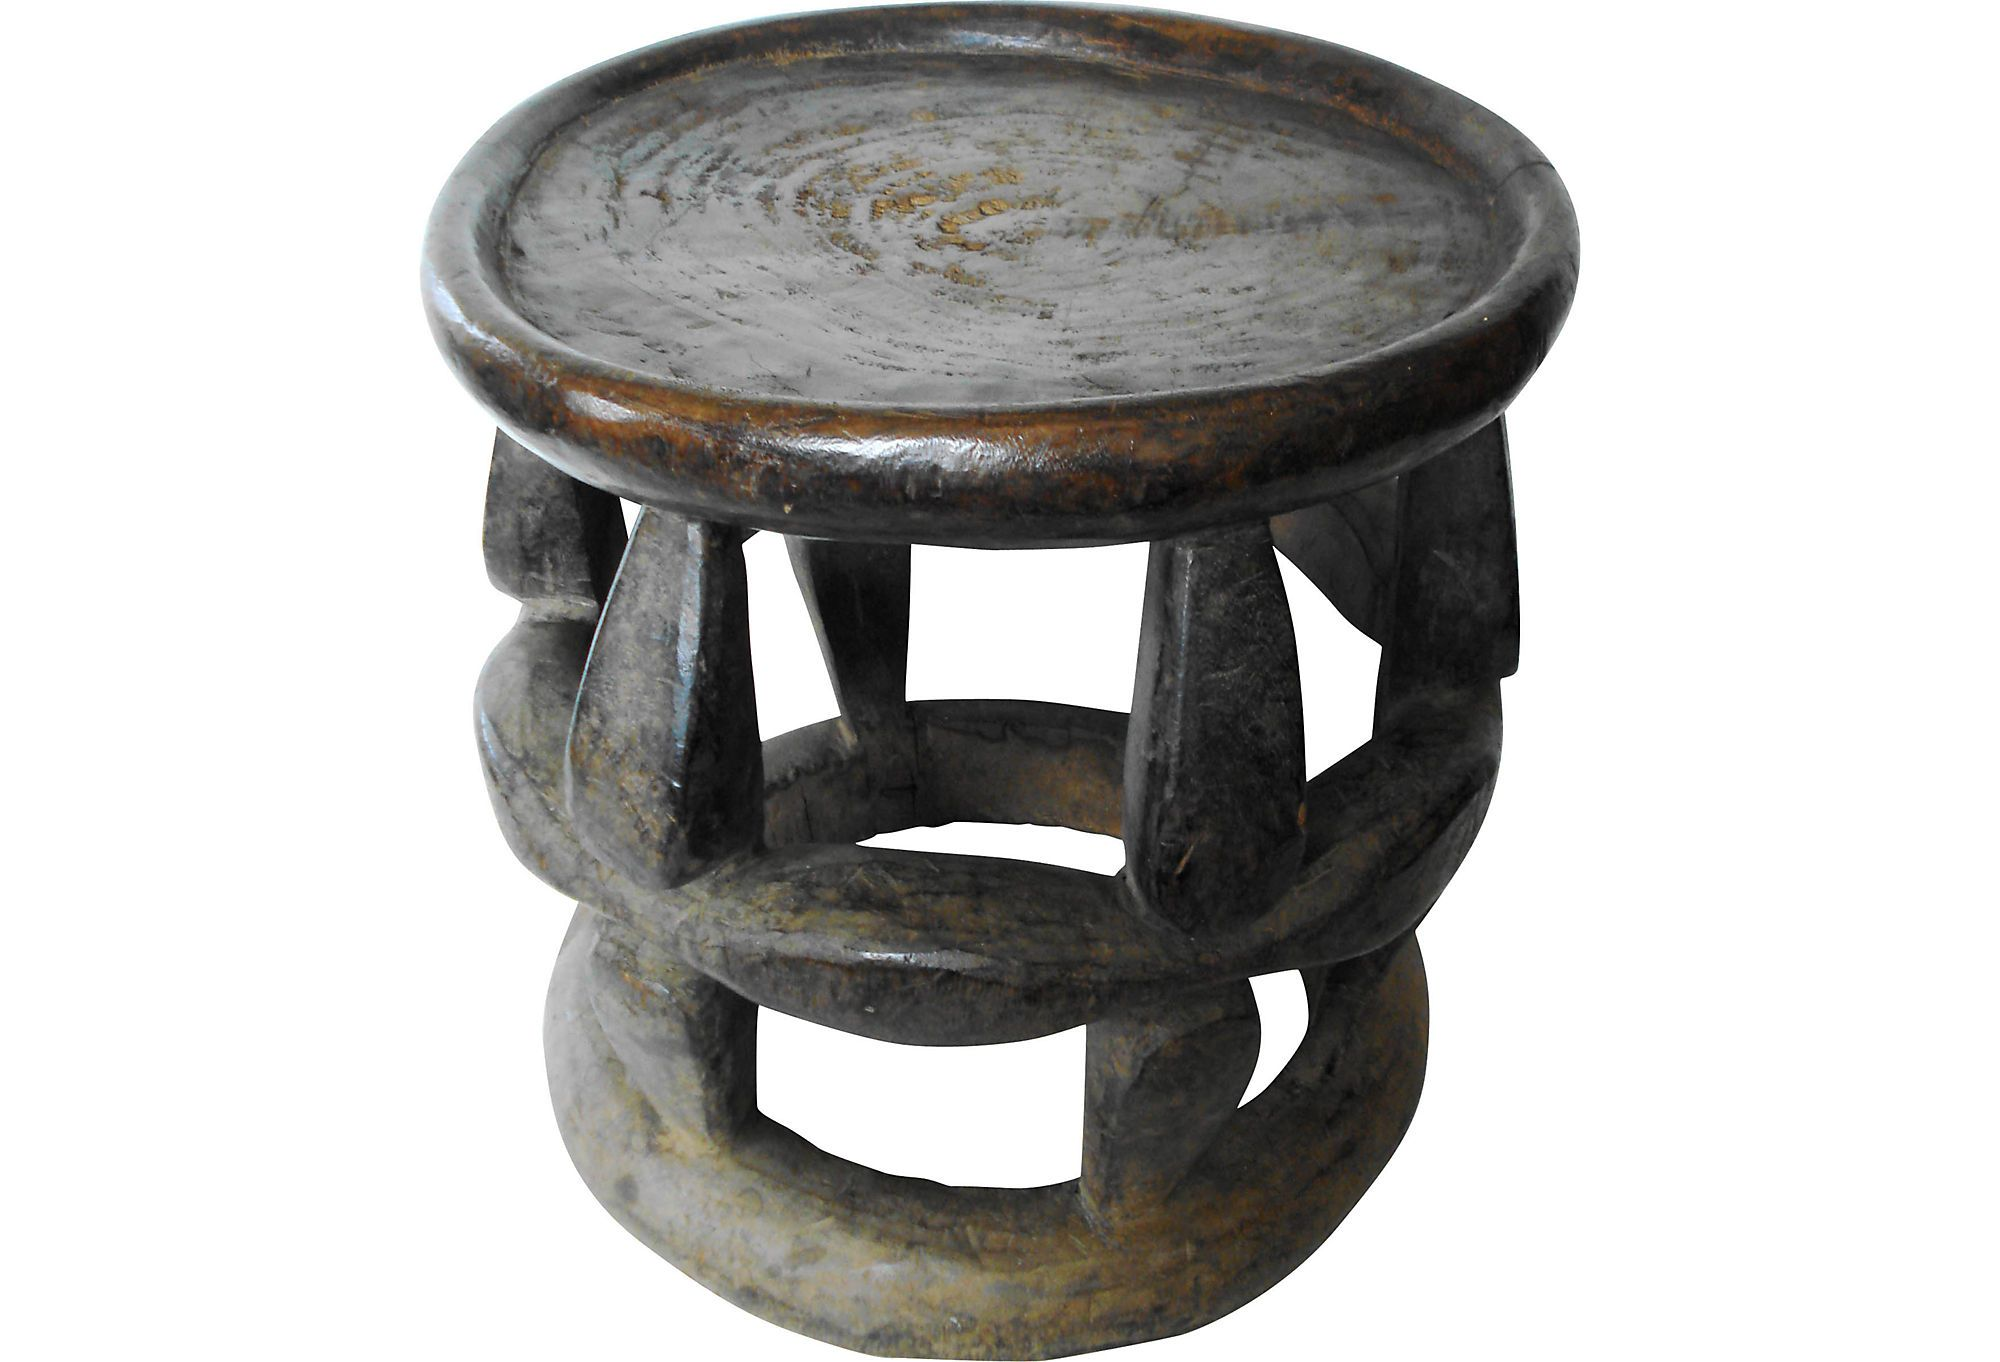 Pleasant Vintage Hand Carved Wood African Stool From The Hehe Tribe Forskolin Free Trial Chair Design Images Forskolin Free Trialorg